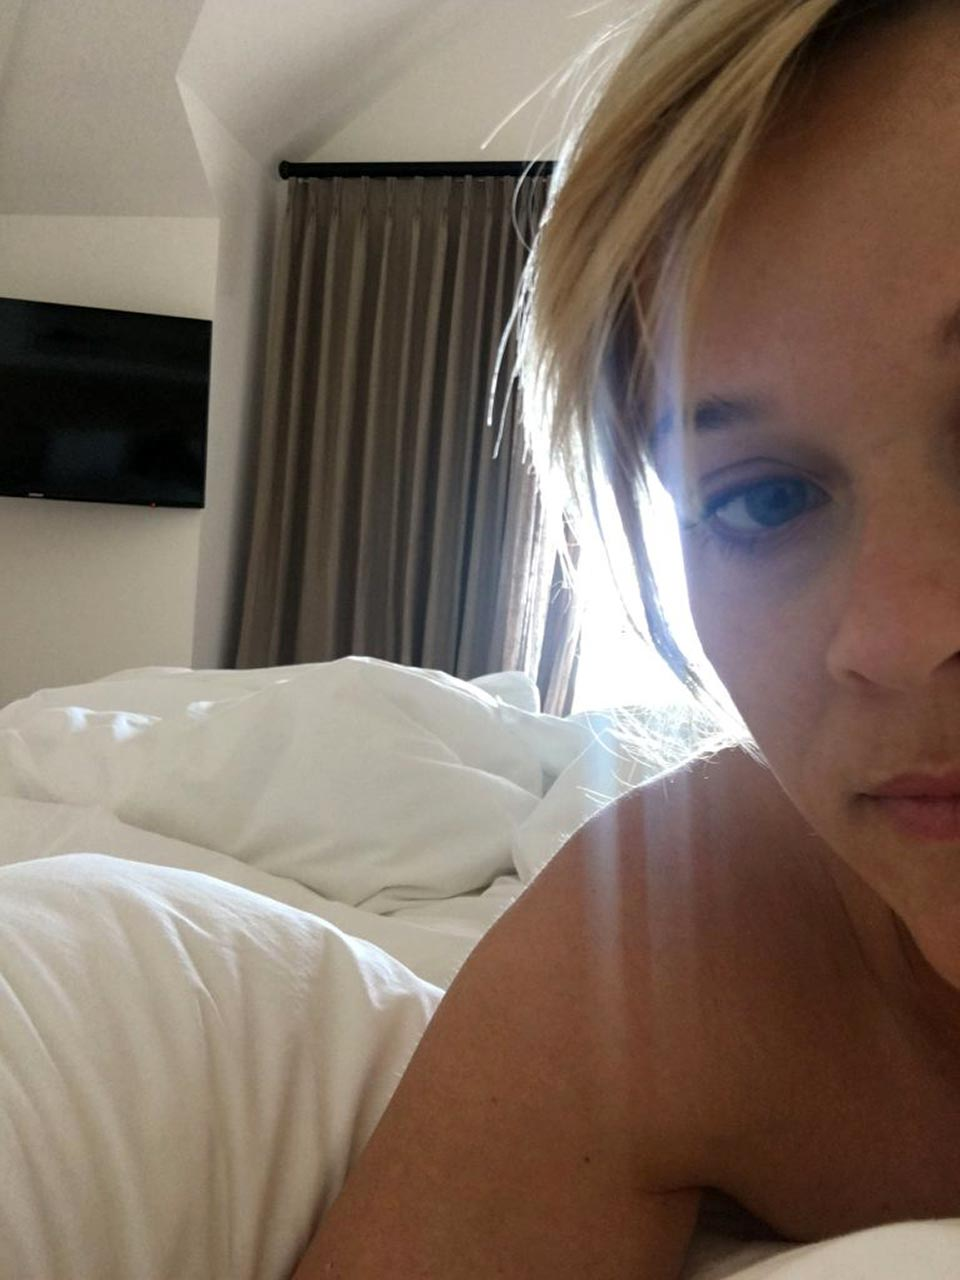 Reese Witherspoon Nackt bild 21